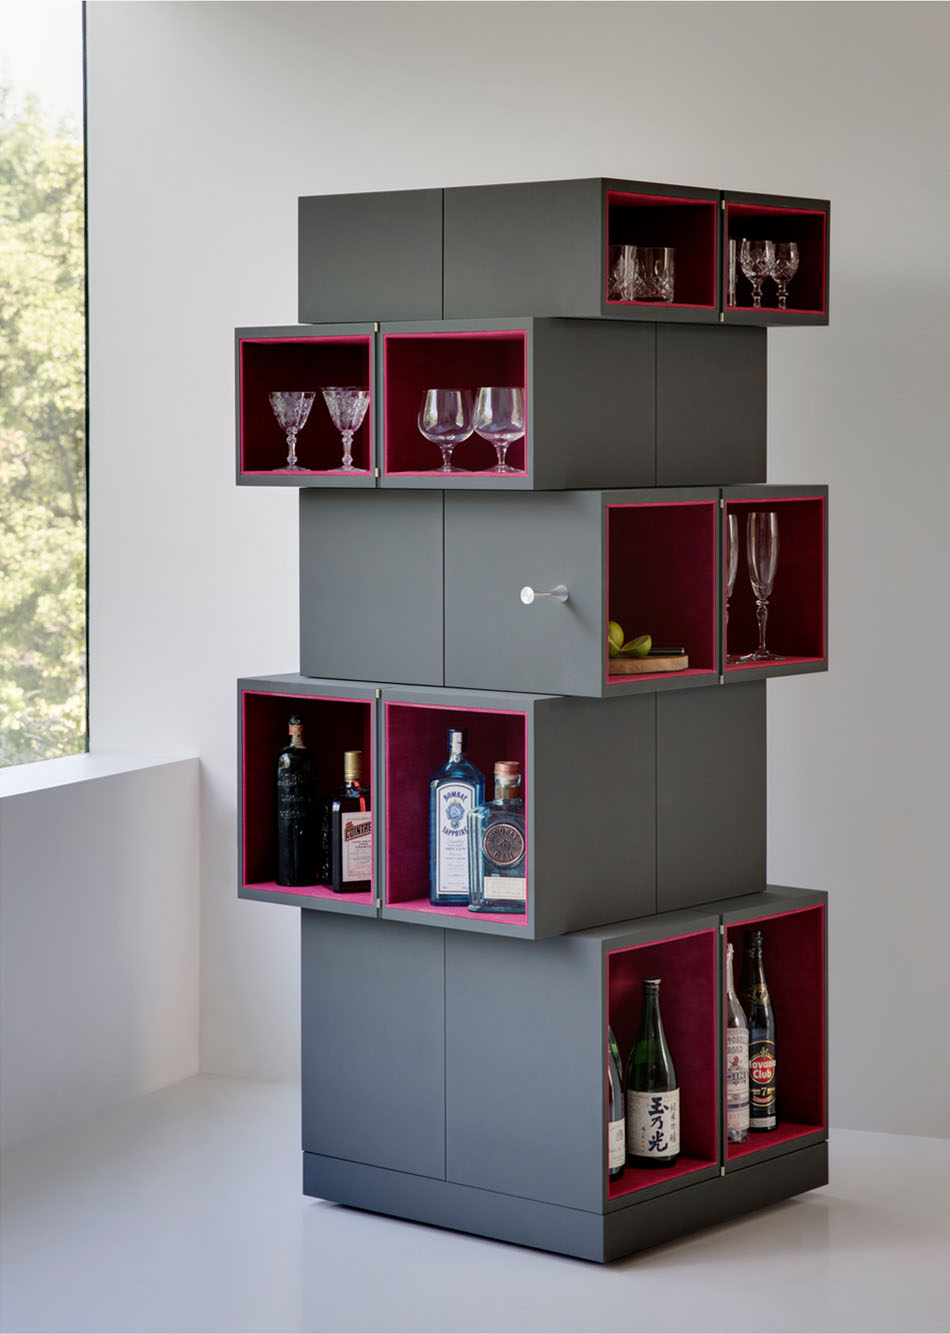 cube-cubrick-cabinet-unfolded